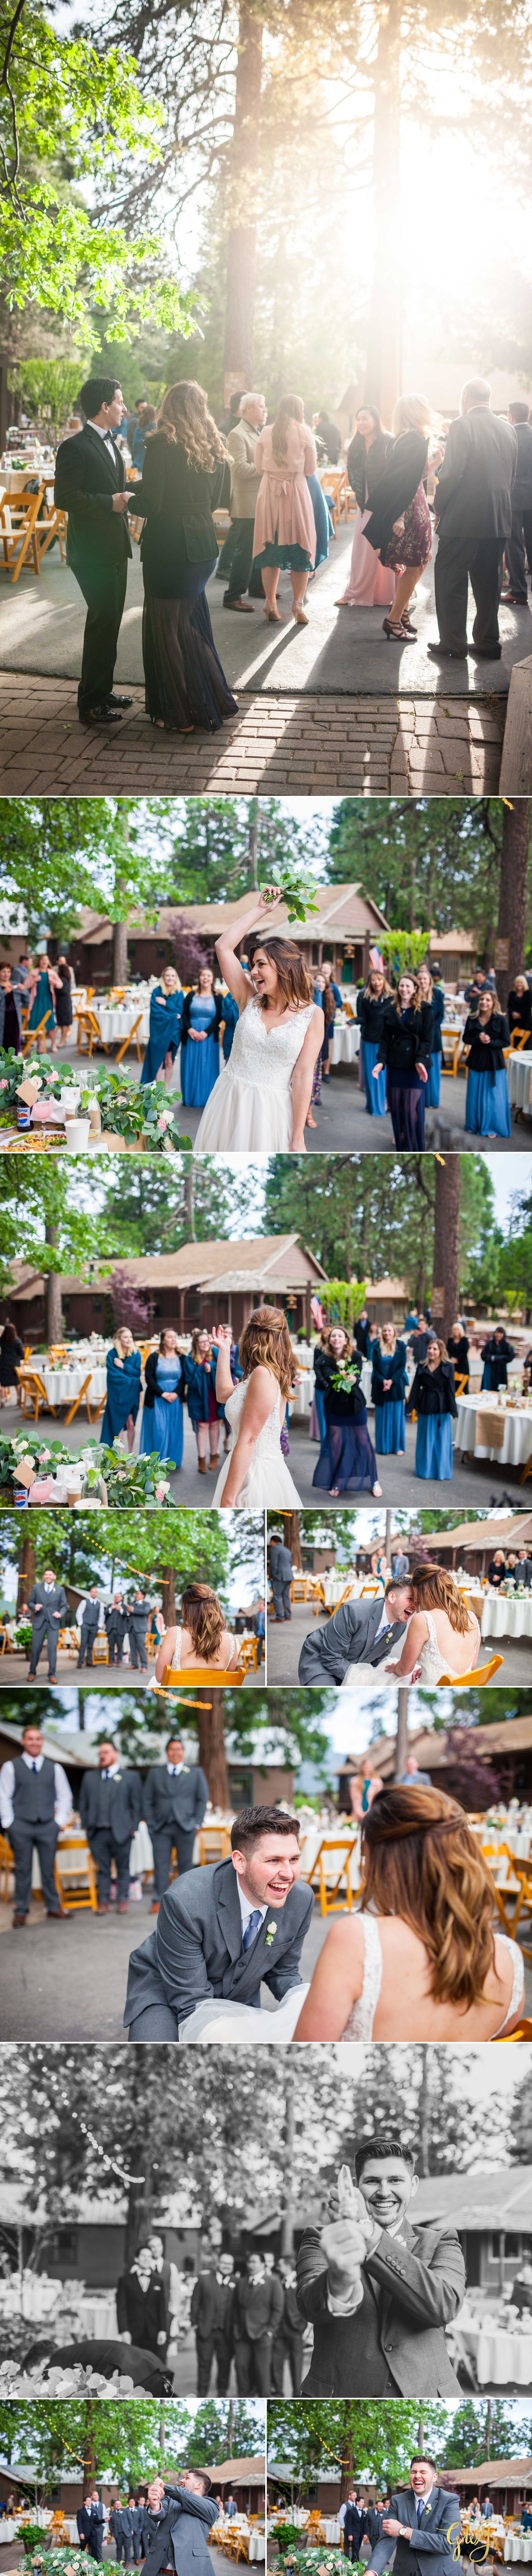 Allison + Jared Southern California Mountain Thousand Pines Christian Camp Wedding by Glass Woods Media 44.jpg